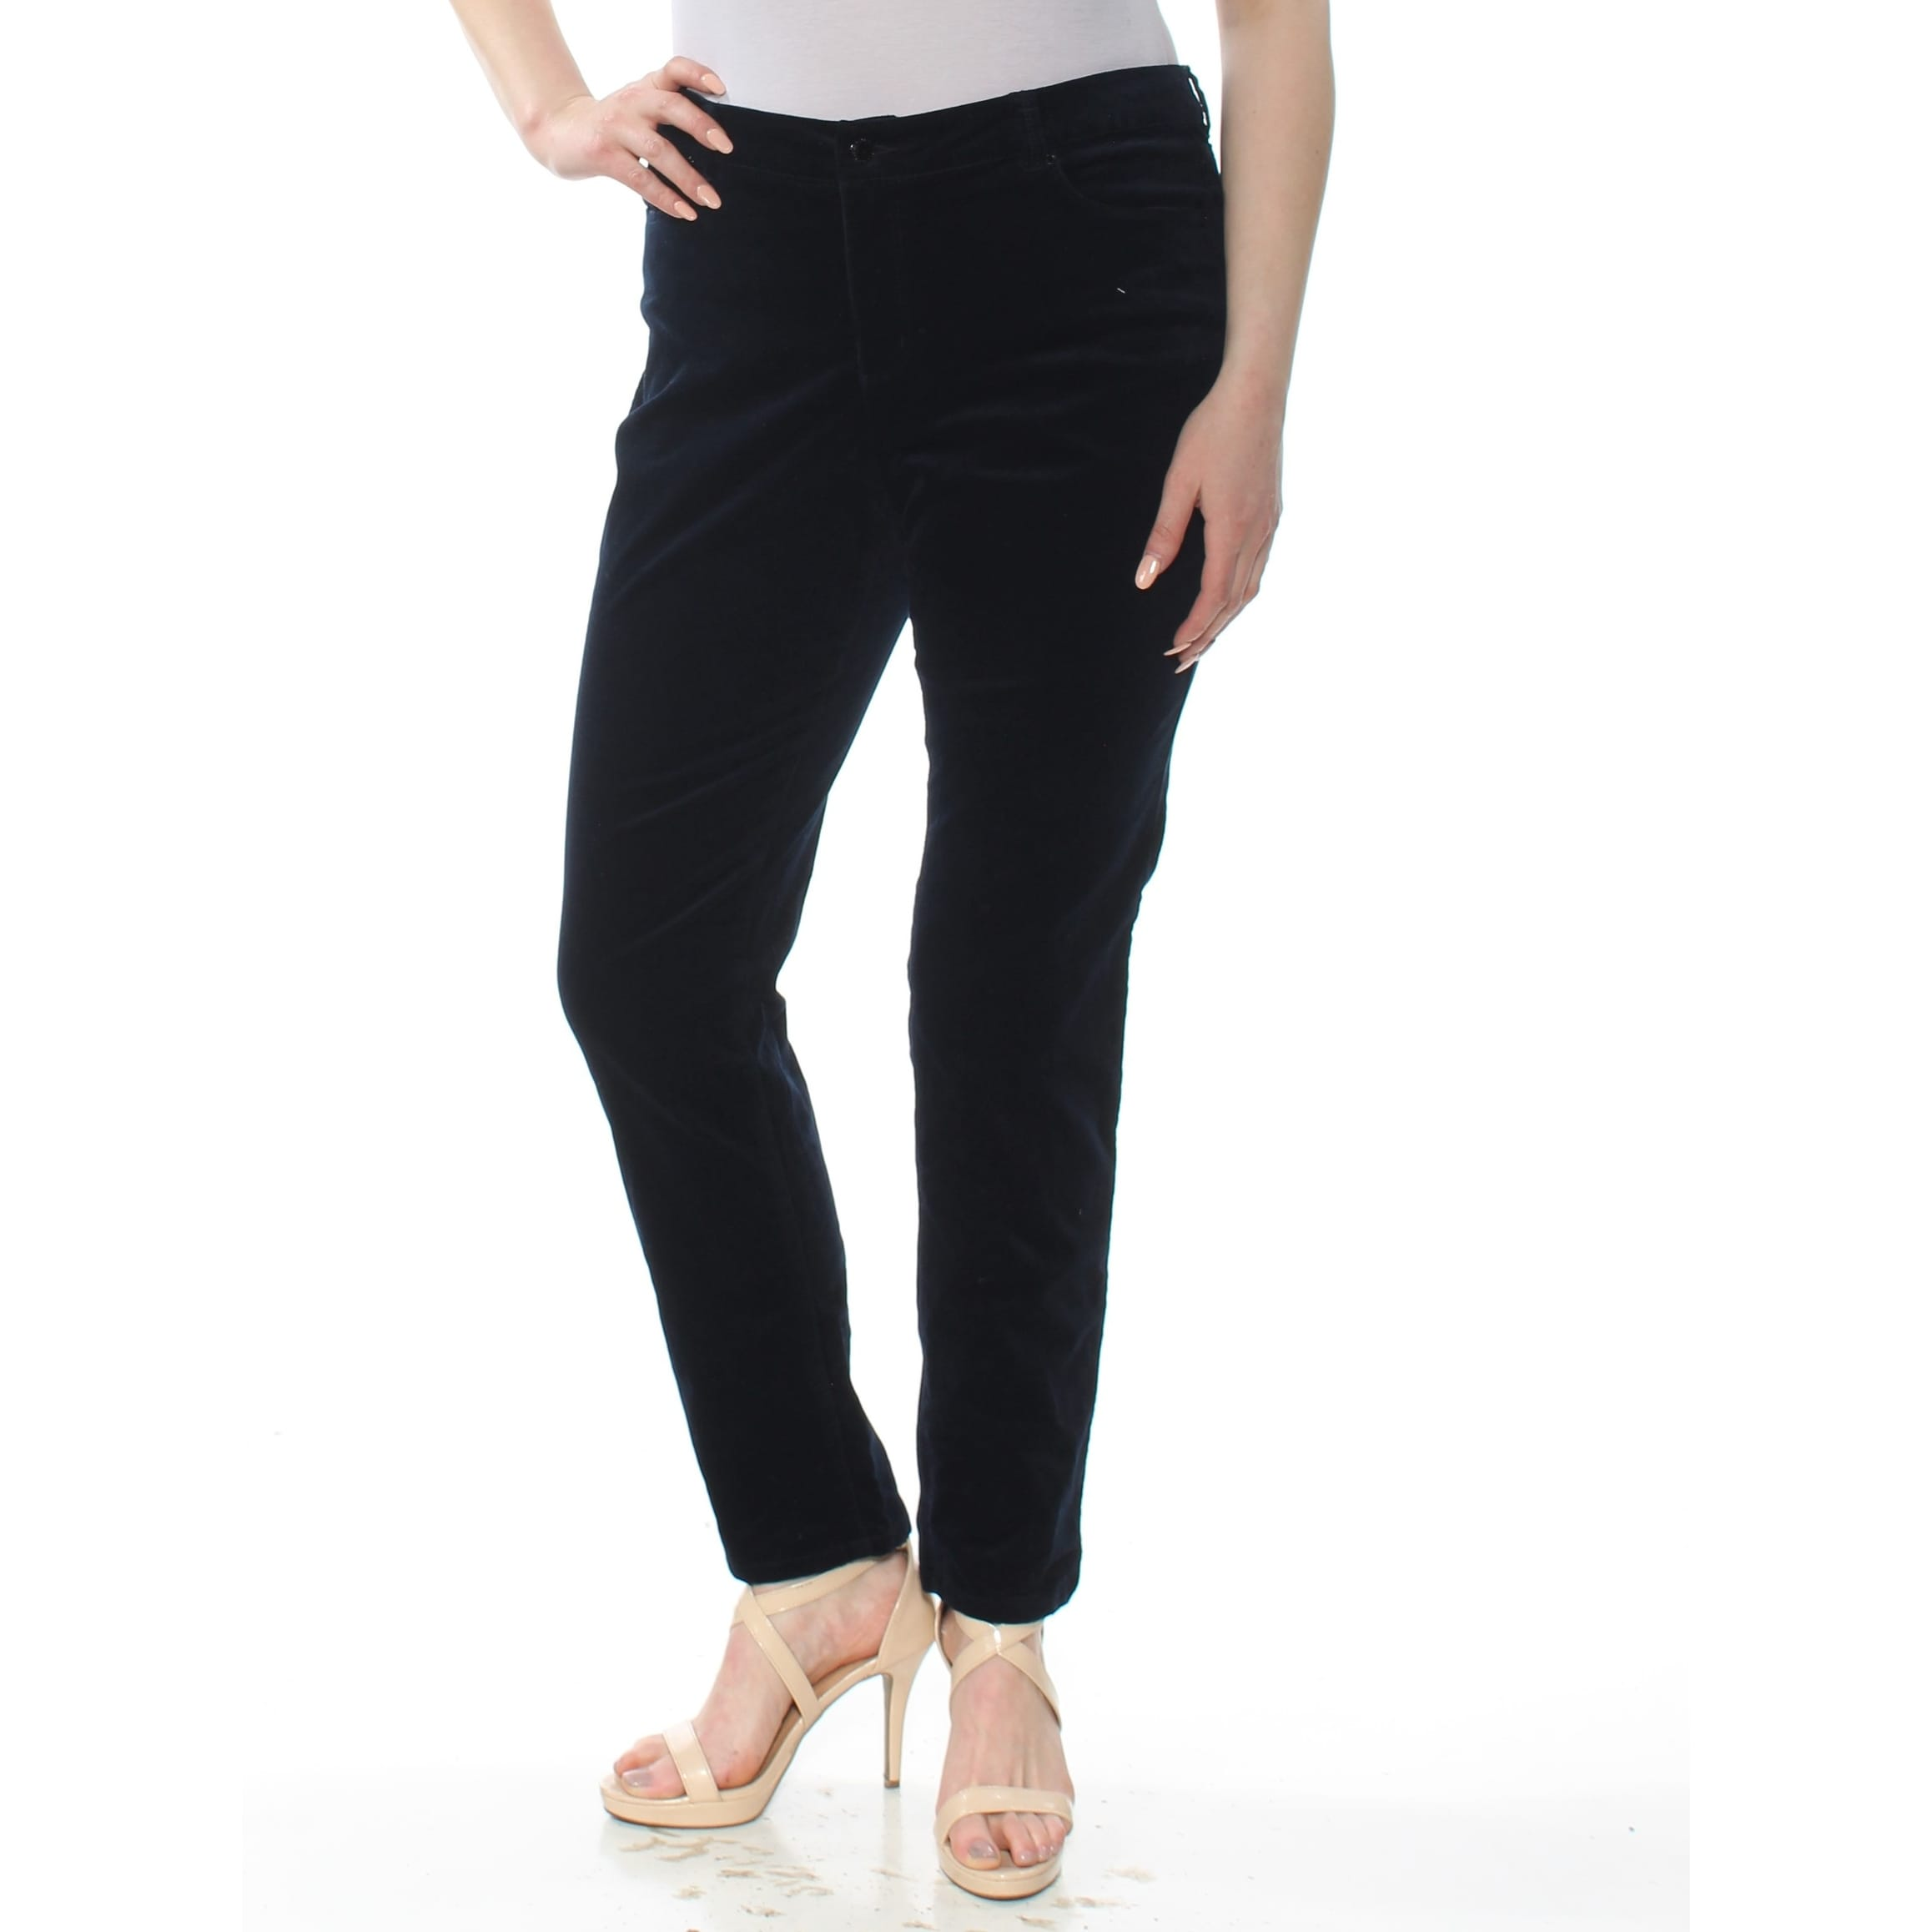 502268df23133 Charter Club Pants | Find Great Women's Clothing Deals Shopping at Overstock